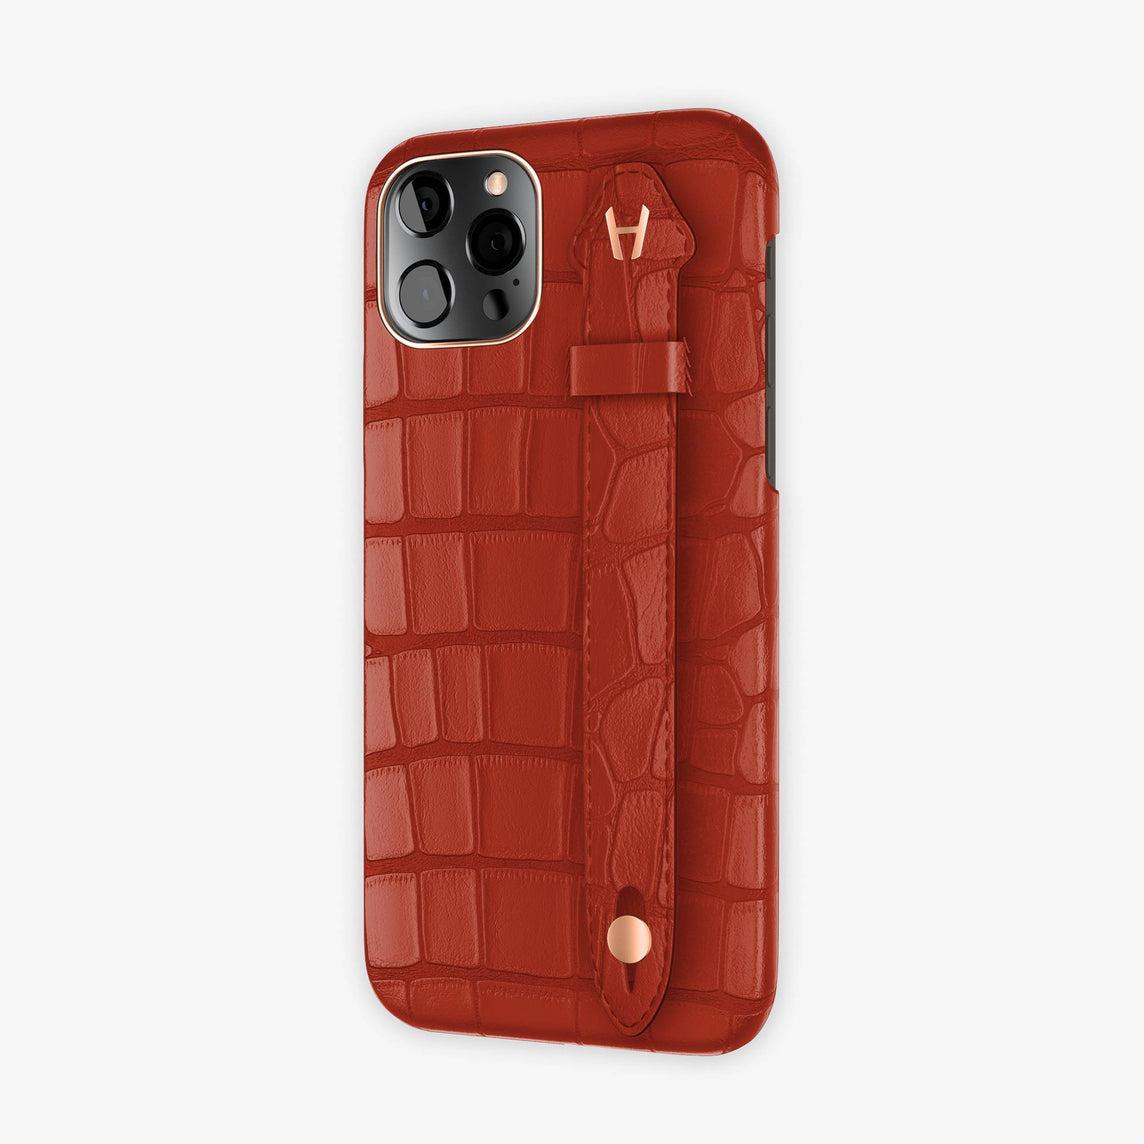 Alligator Side Finger Case iPhone 12 & iPhone 12 Pro | Red Ruby/Red Ruby -Rose Gold